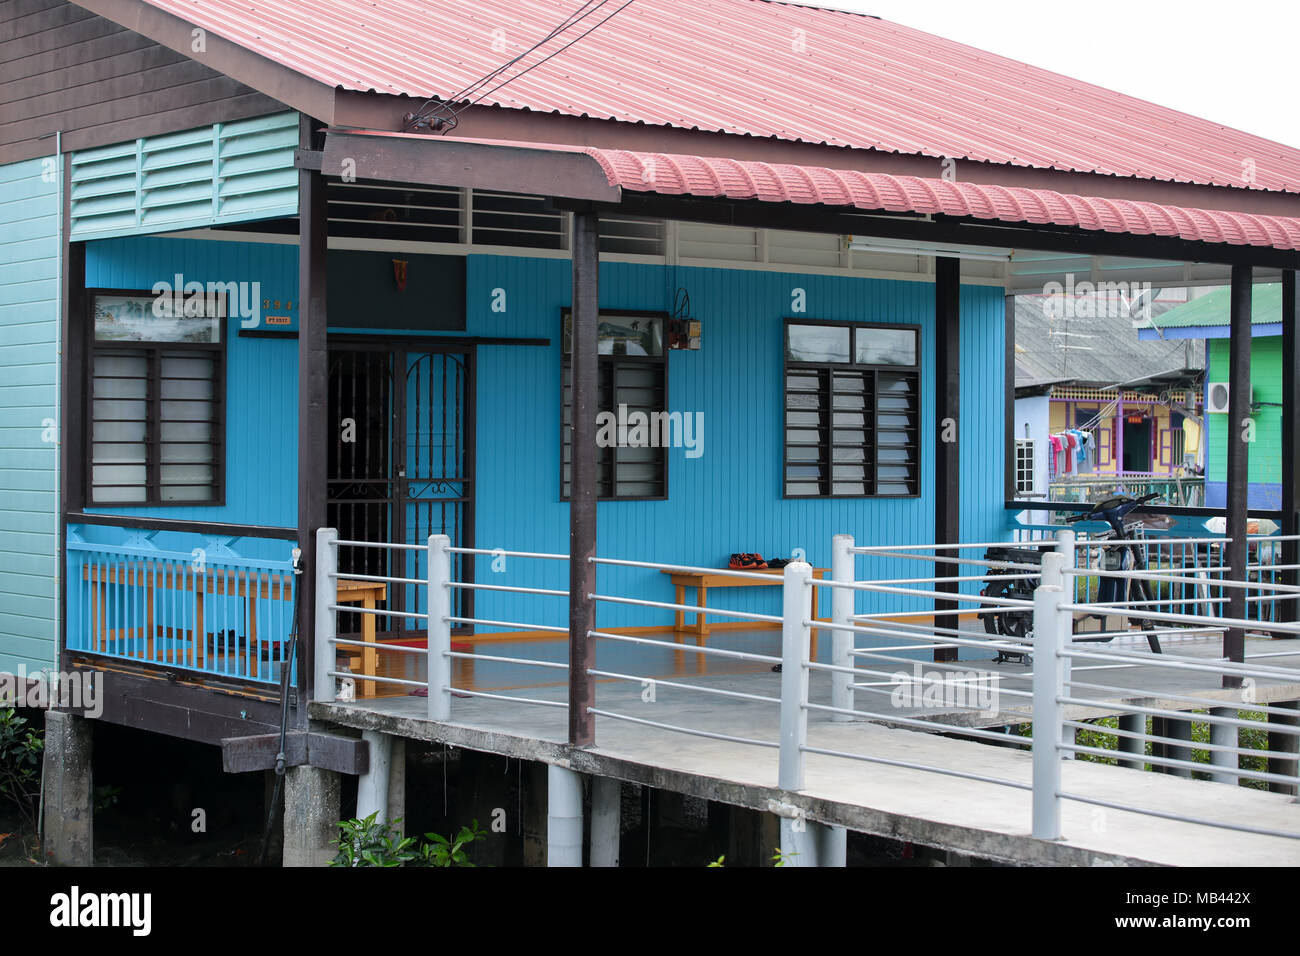 A newly painted civilian home with concrete walkway at Crab island, a famous fishing village in Malaysia. - Stock Image